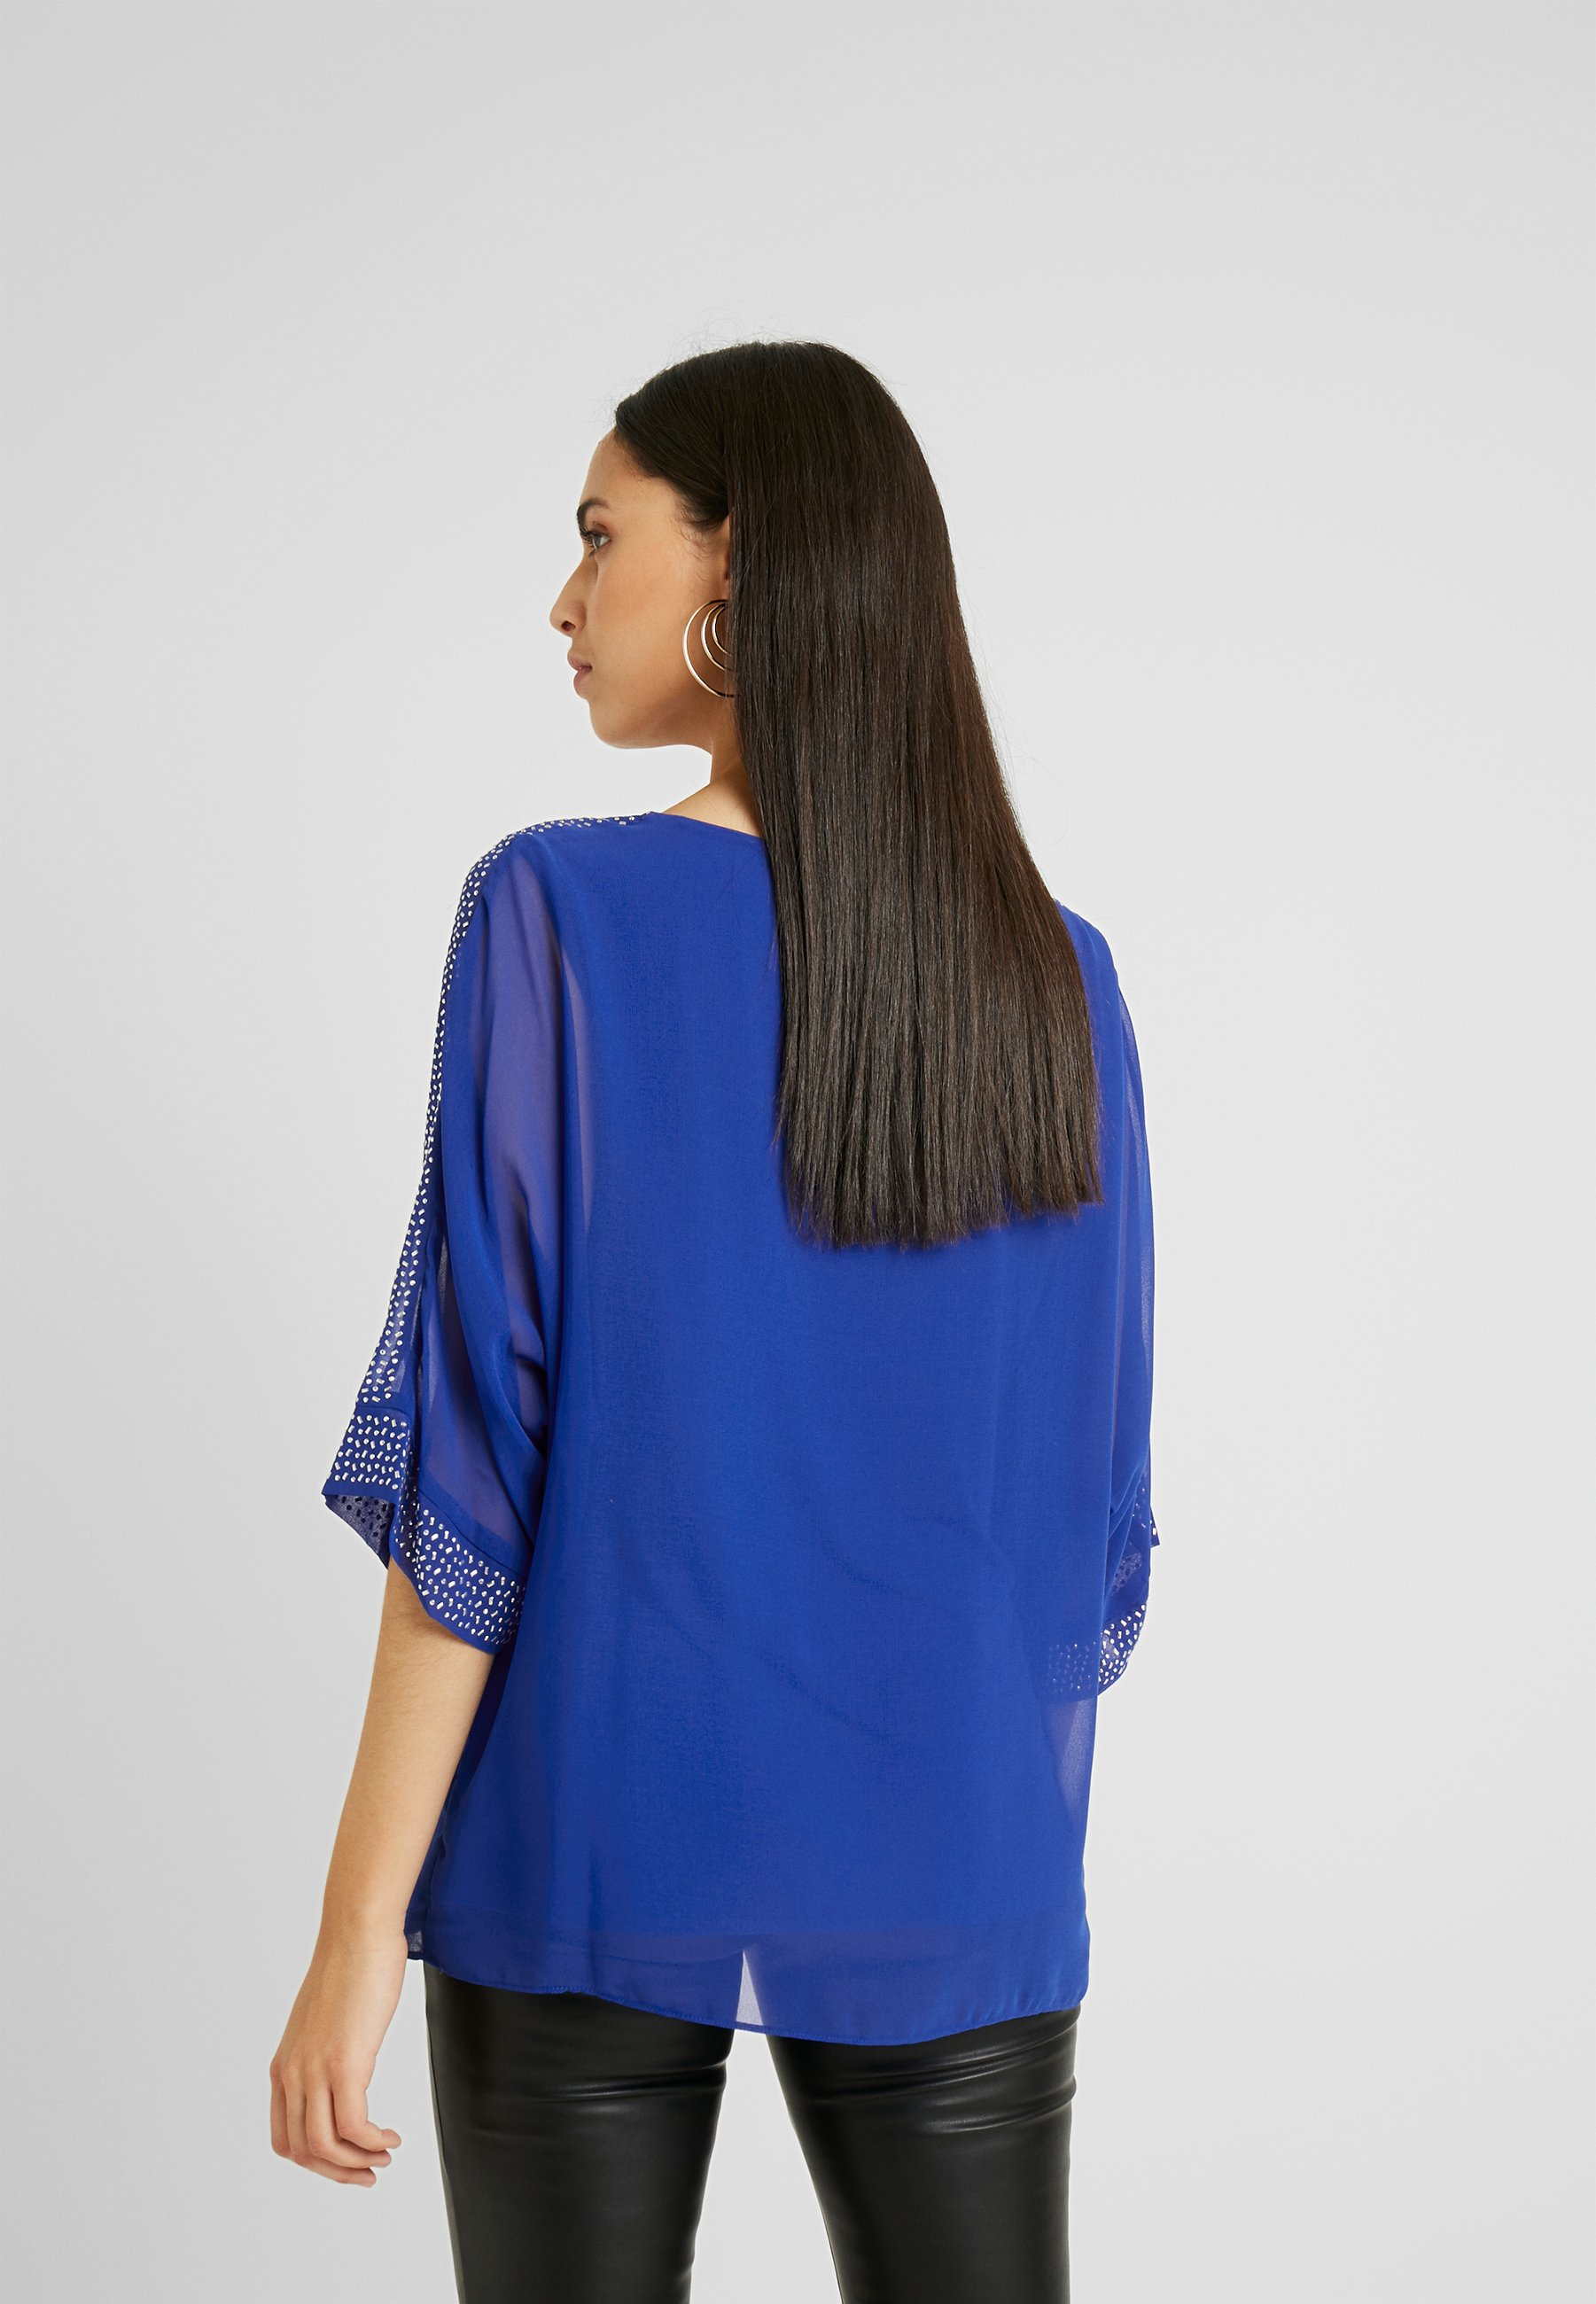 Wallis Tall Bluser - blue